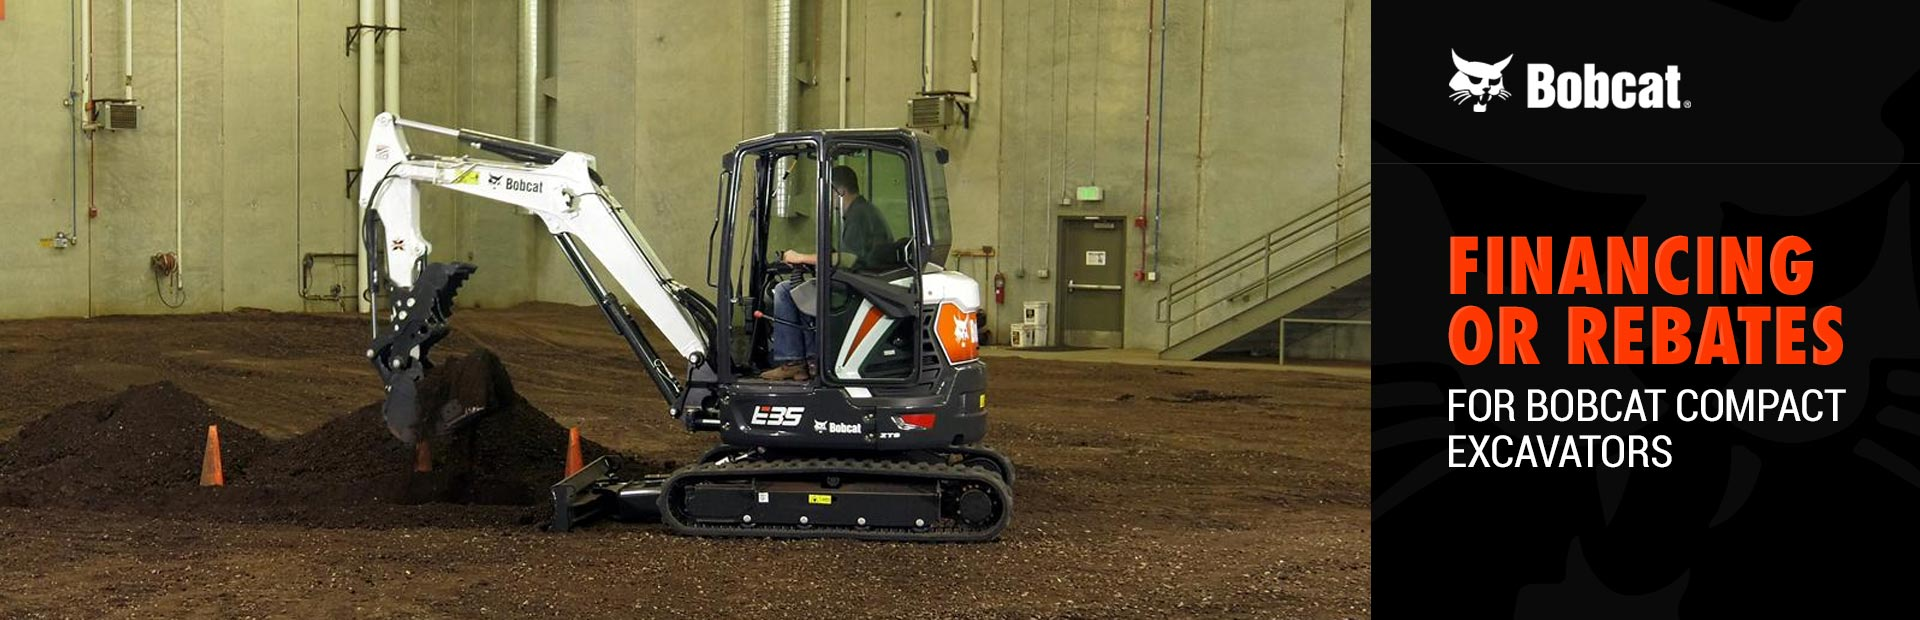 Bobcat: Financing or Rebates for Bobcat Compact Excavators